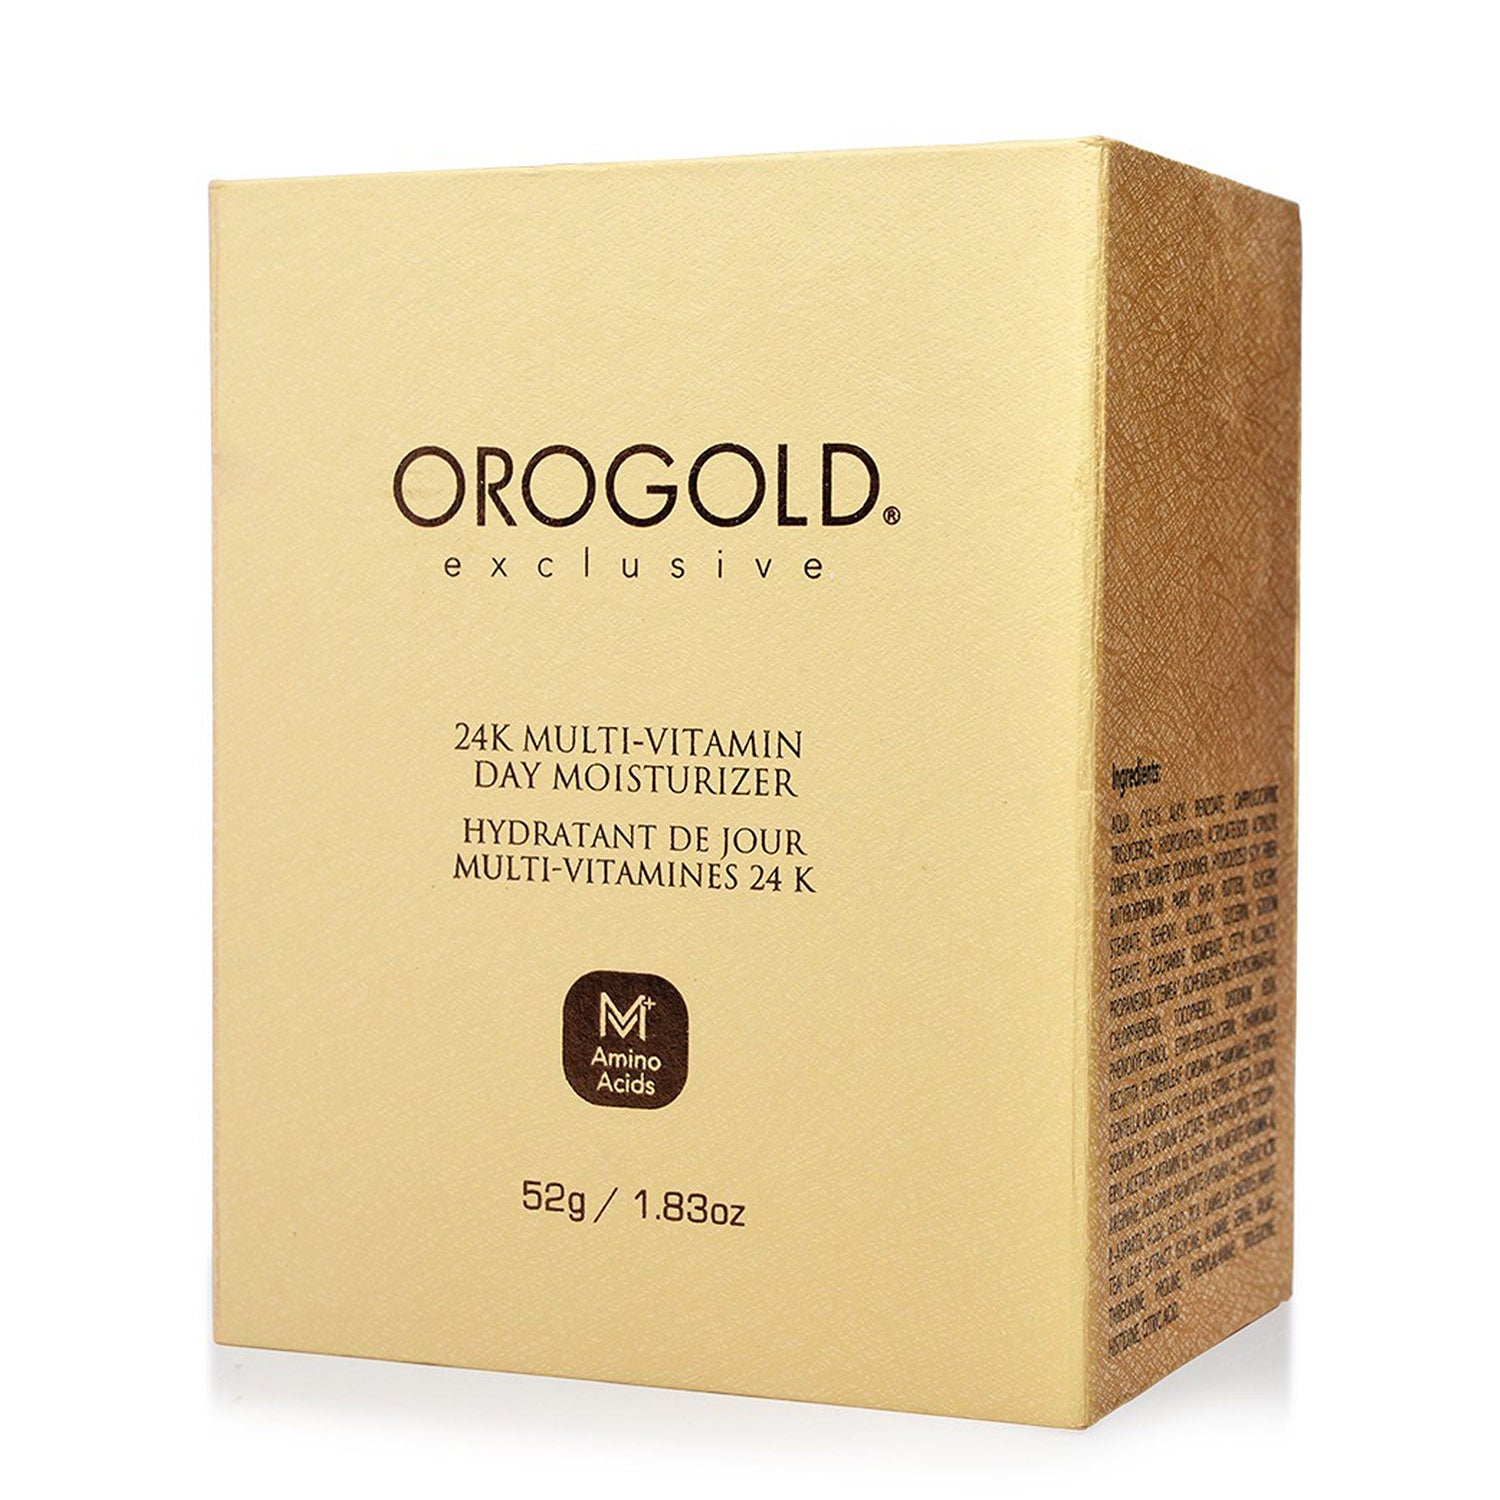 orogold multi-vitamin day moisturizer + amino acid